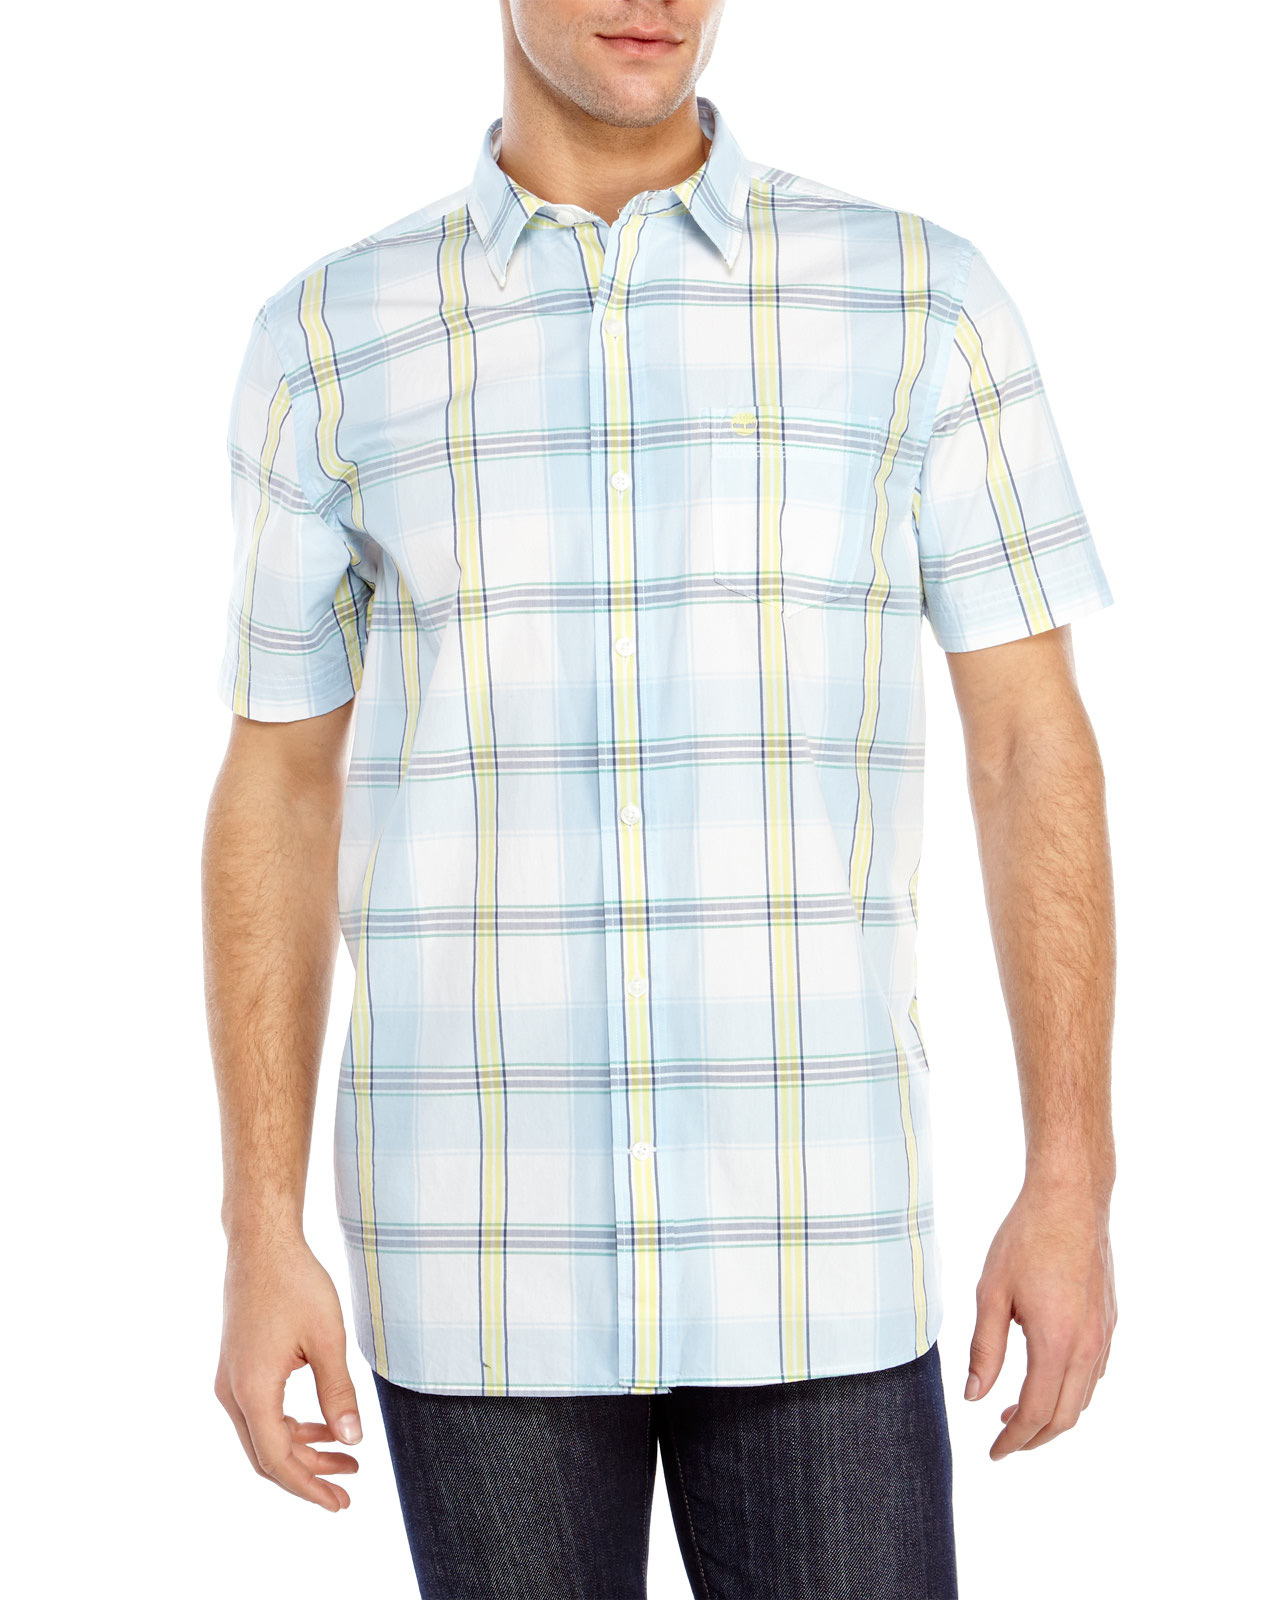 Timberland short sleeve plaid sport shirt in blue for men Short sleeve plaid shirts